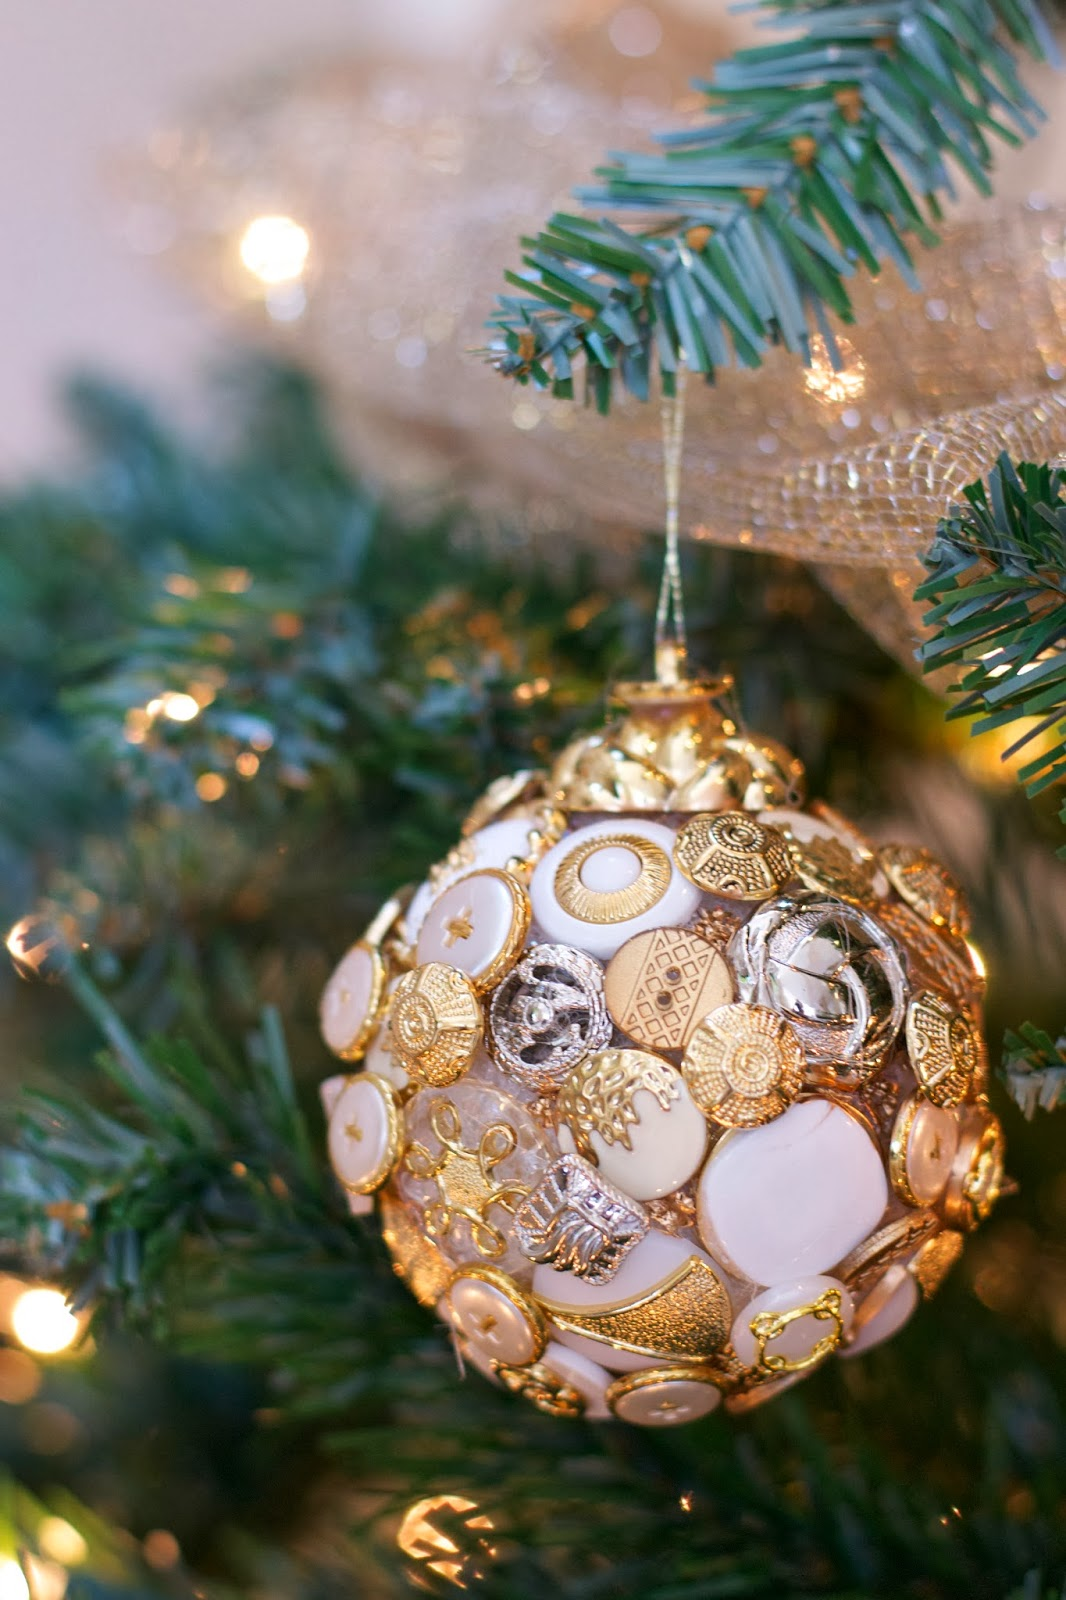 10 Quick and easy DIY Christmas tree decorations | Fresh ...